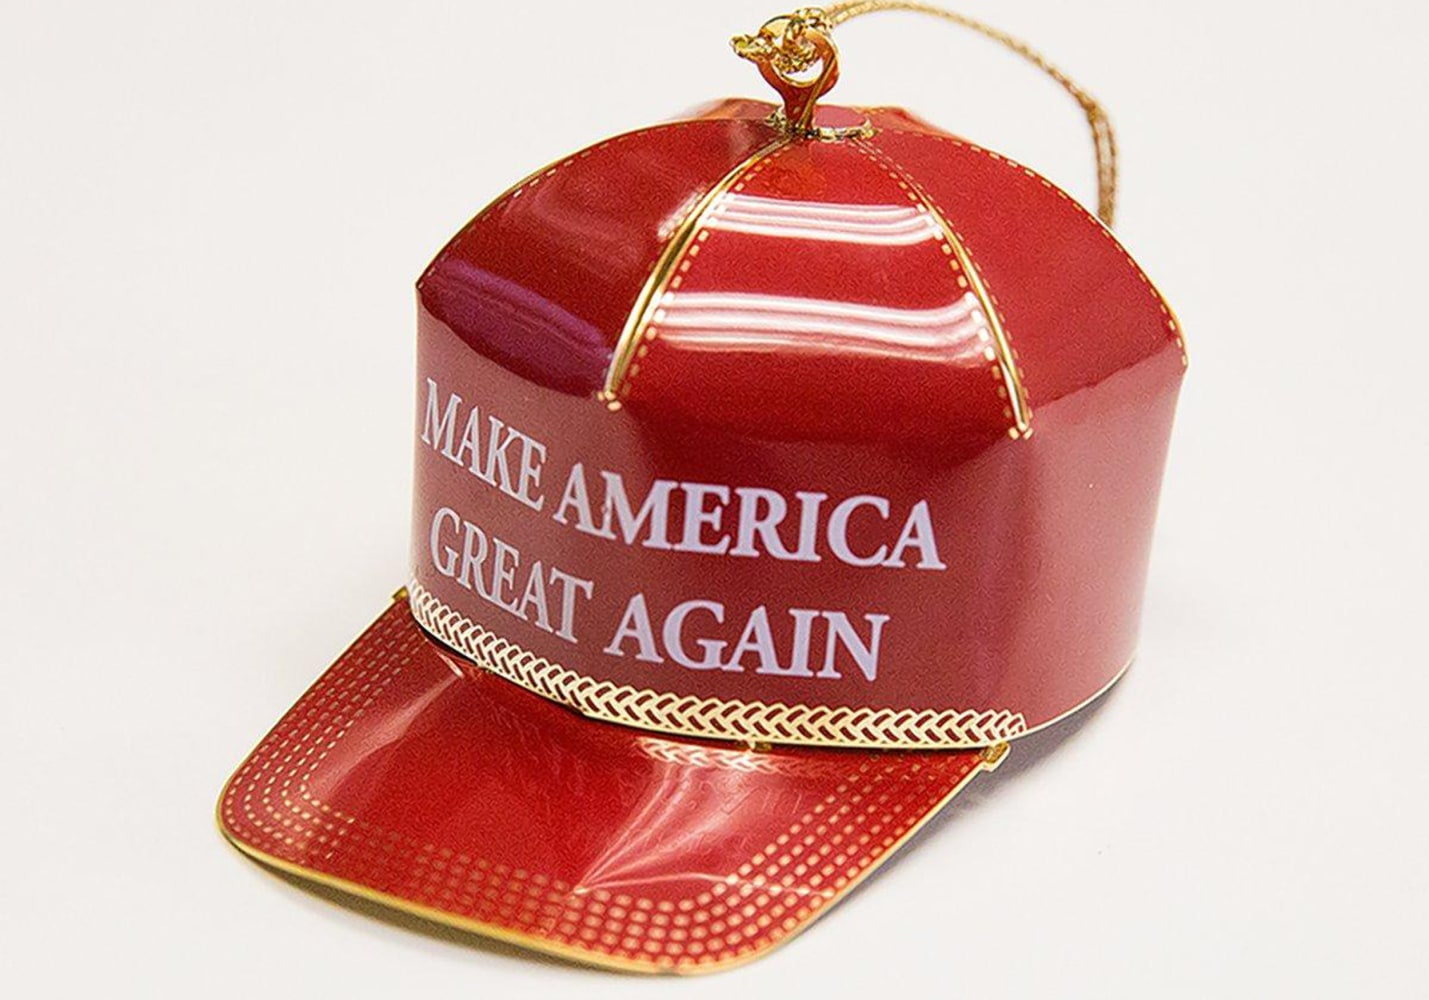 Asian christmas ornaments - Donald Trump S Iconic Make America Great Again Hat Is Now Available As A Christmas Tree Ornament Donaldjtrump Com